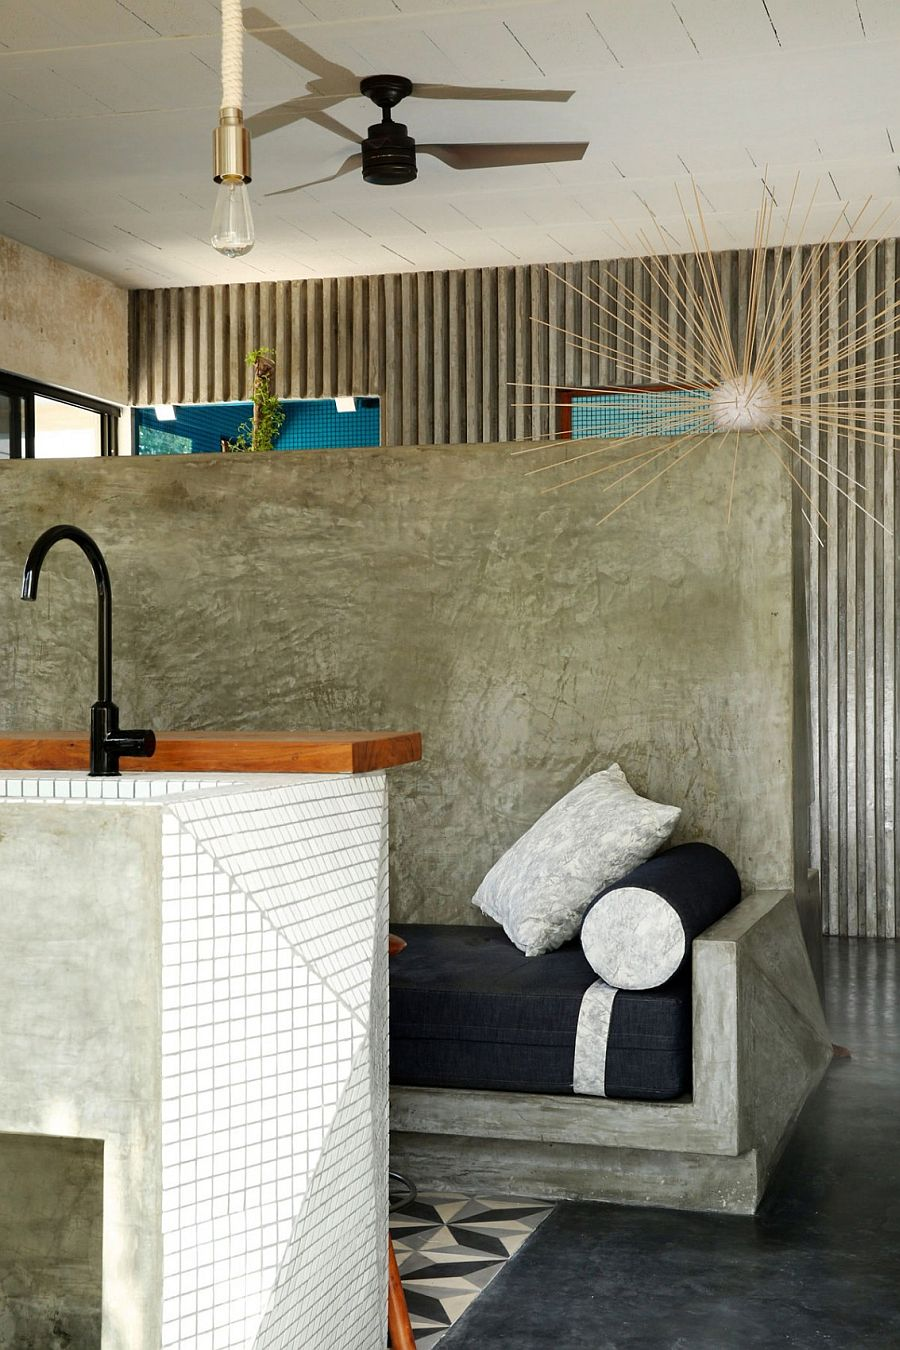 Polsihed cement bench in the kitchen with comfy cusion in dark blue